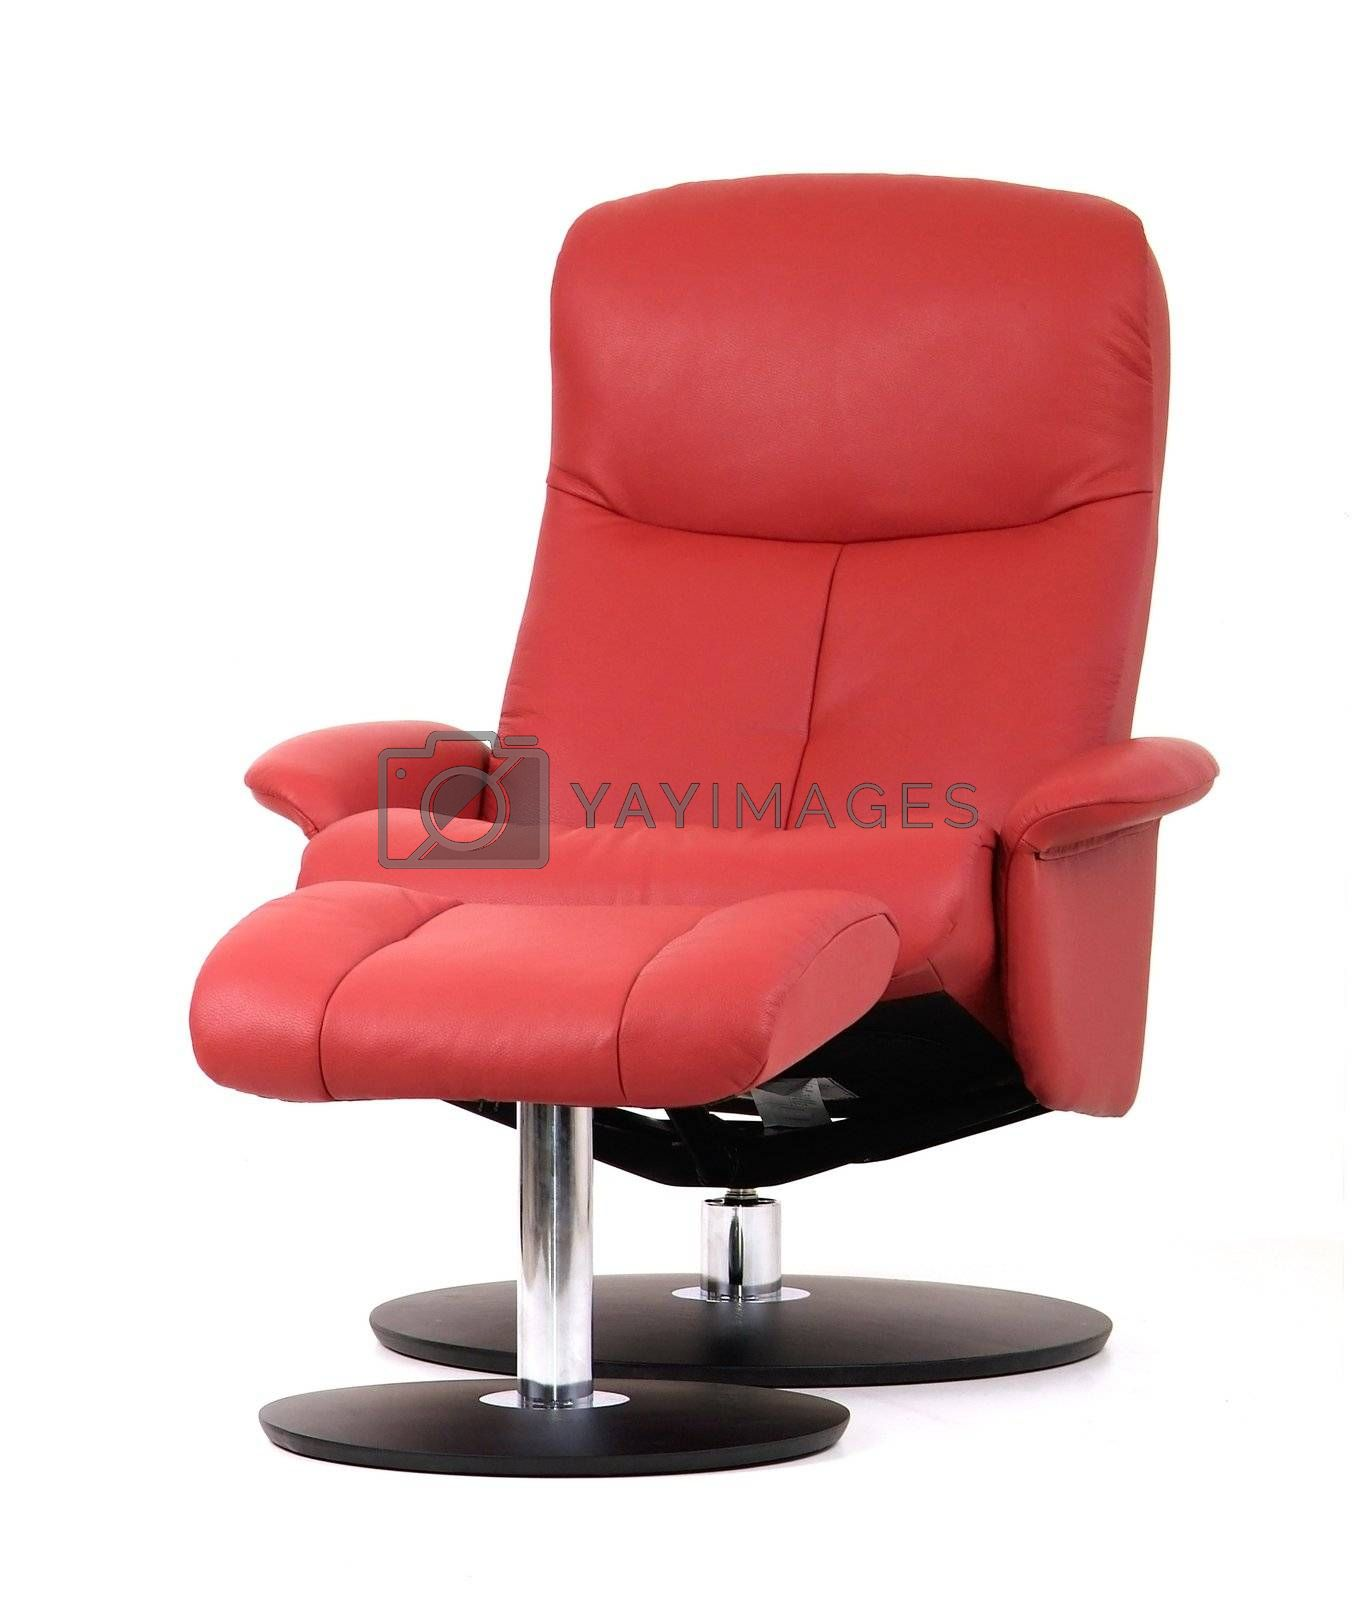 Red recliner with footstool by epixx